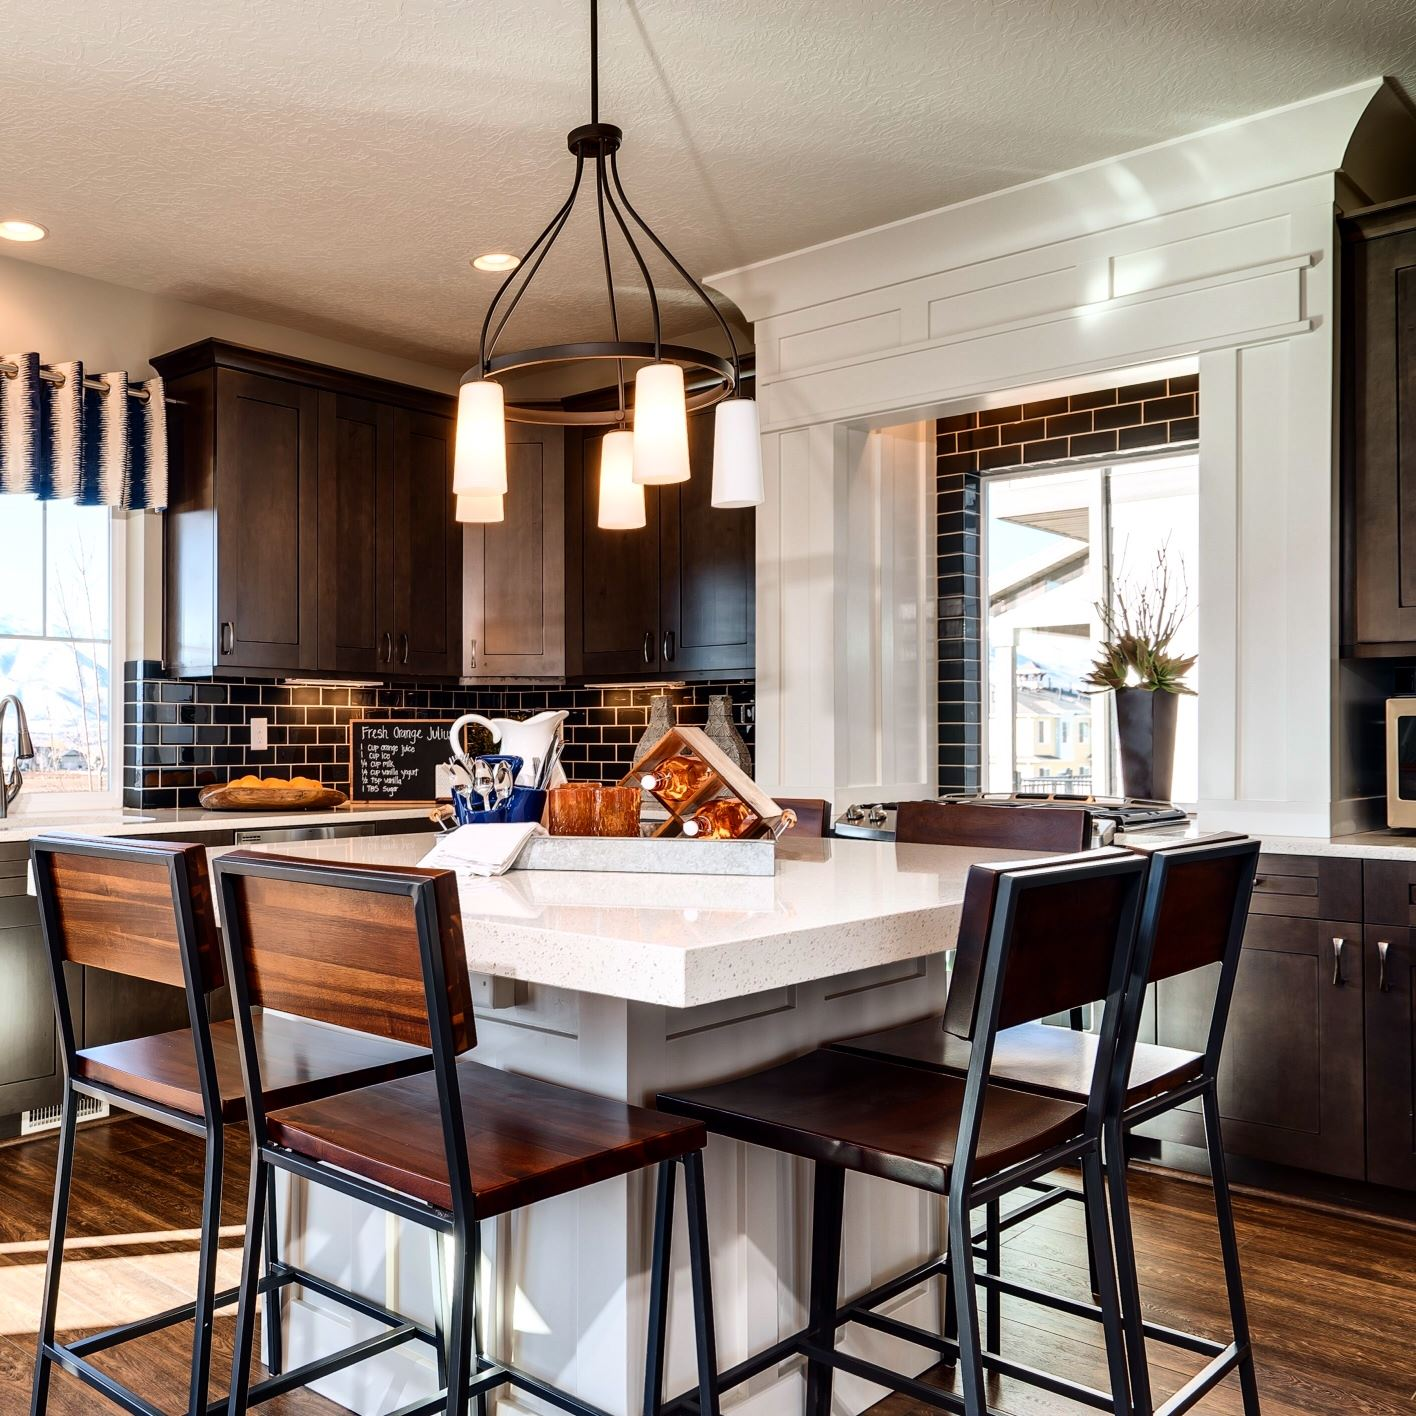 ... so many makes Oakwood Homes kitchens very family-friendly and comfortable for everyday living. We also adore the contrast between the cabinetry and trim ...